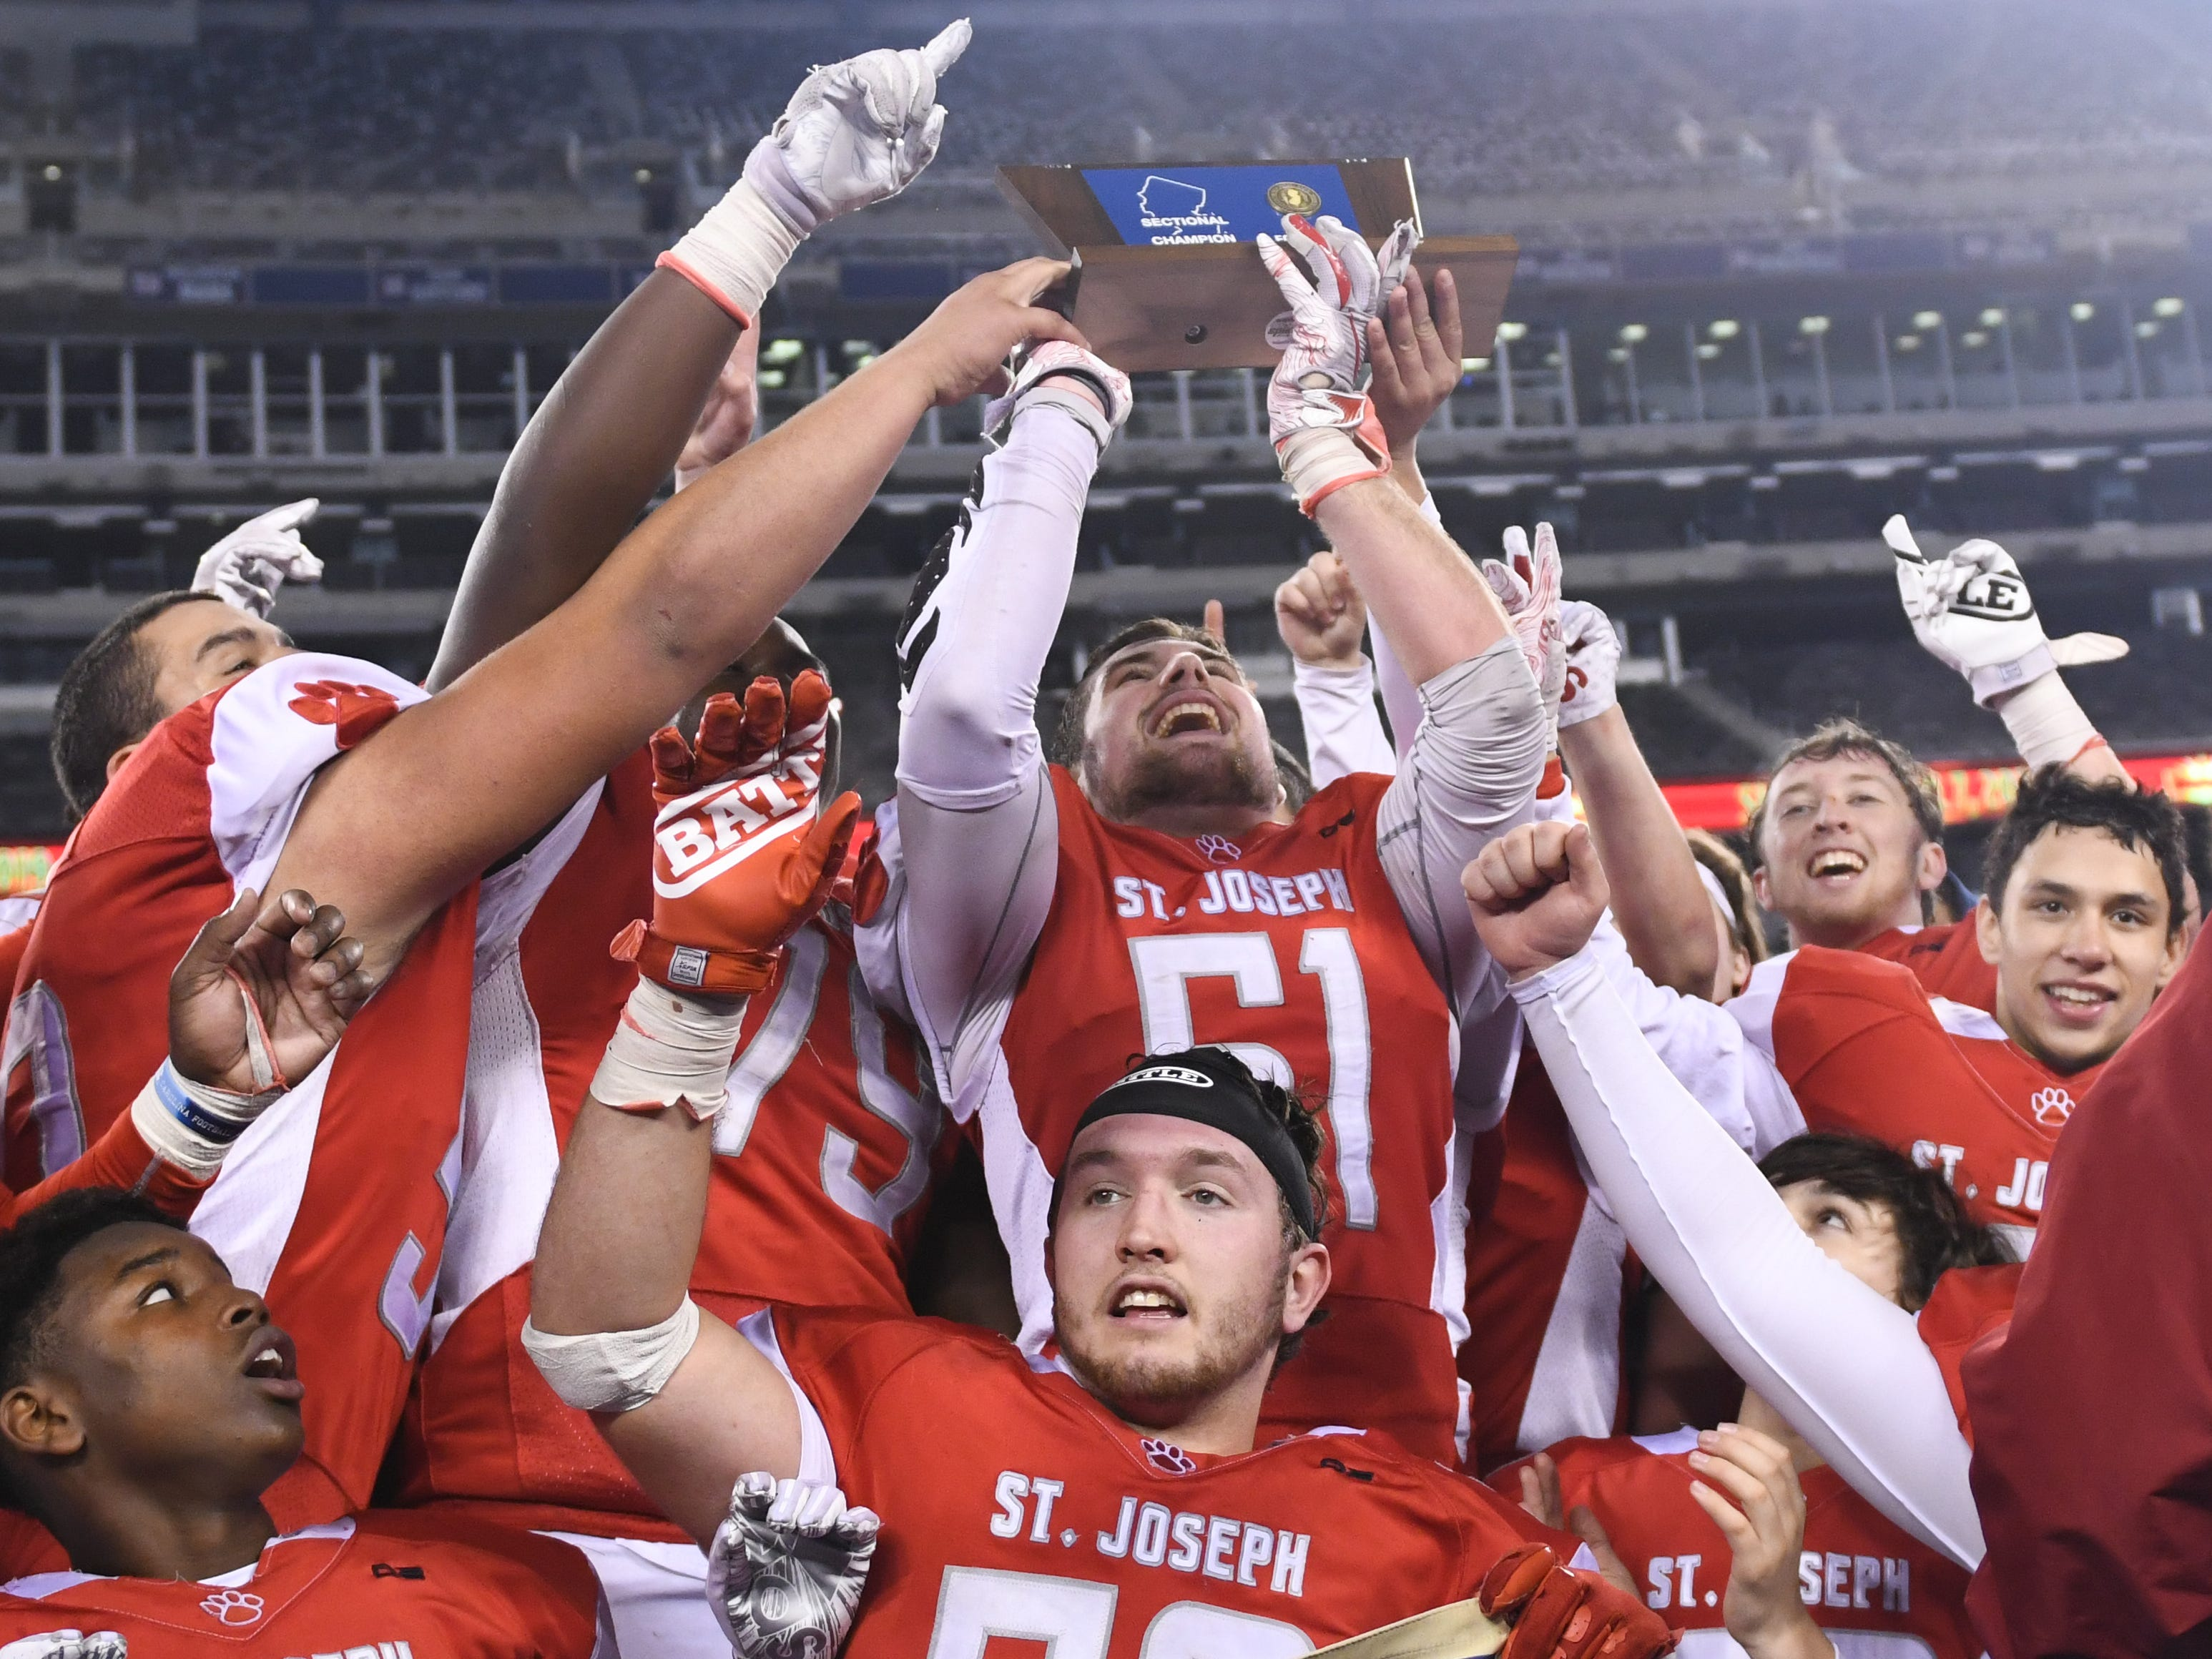 South Jersey football: St. Joseph overcomes season of adversity to win state championship